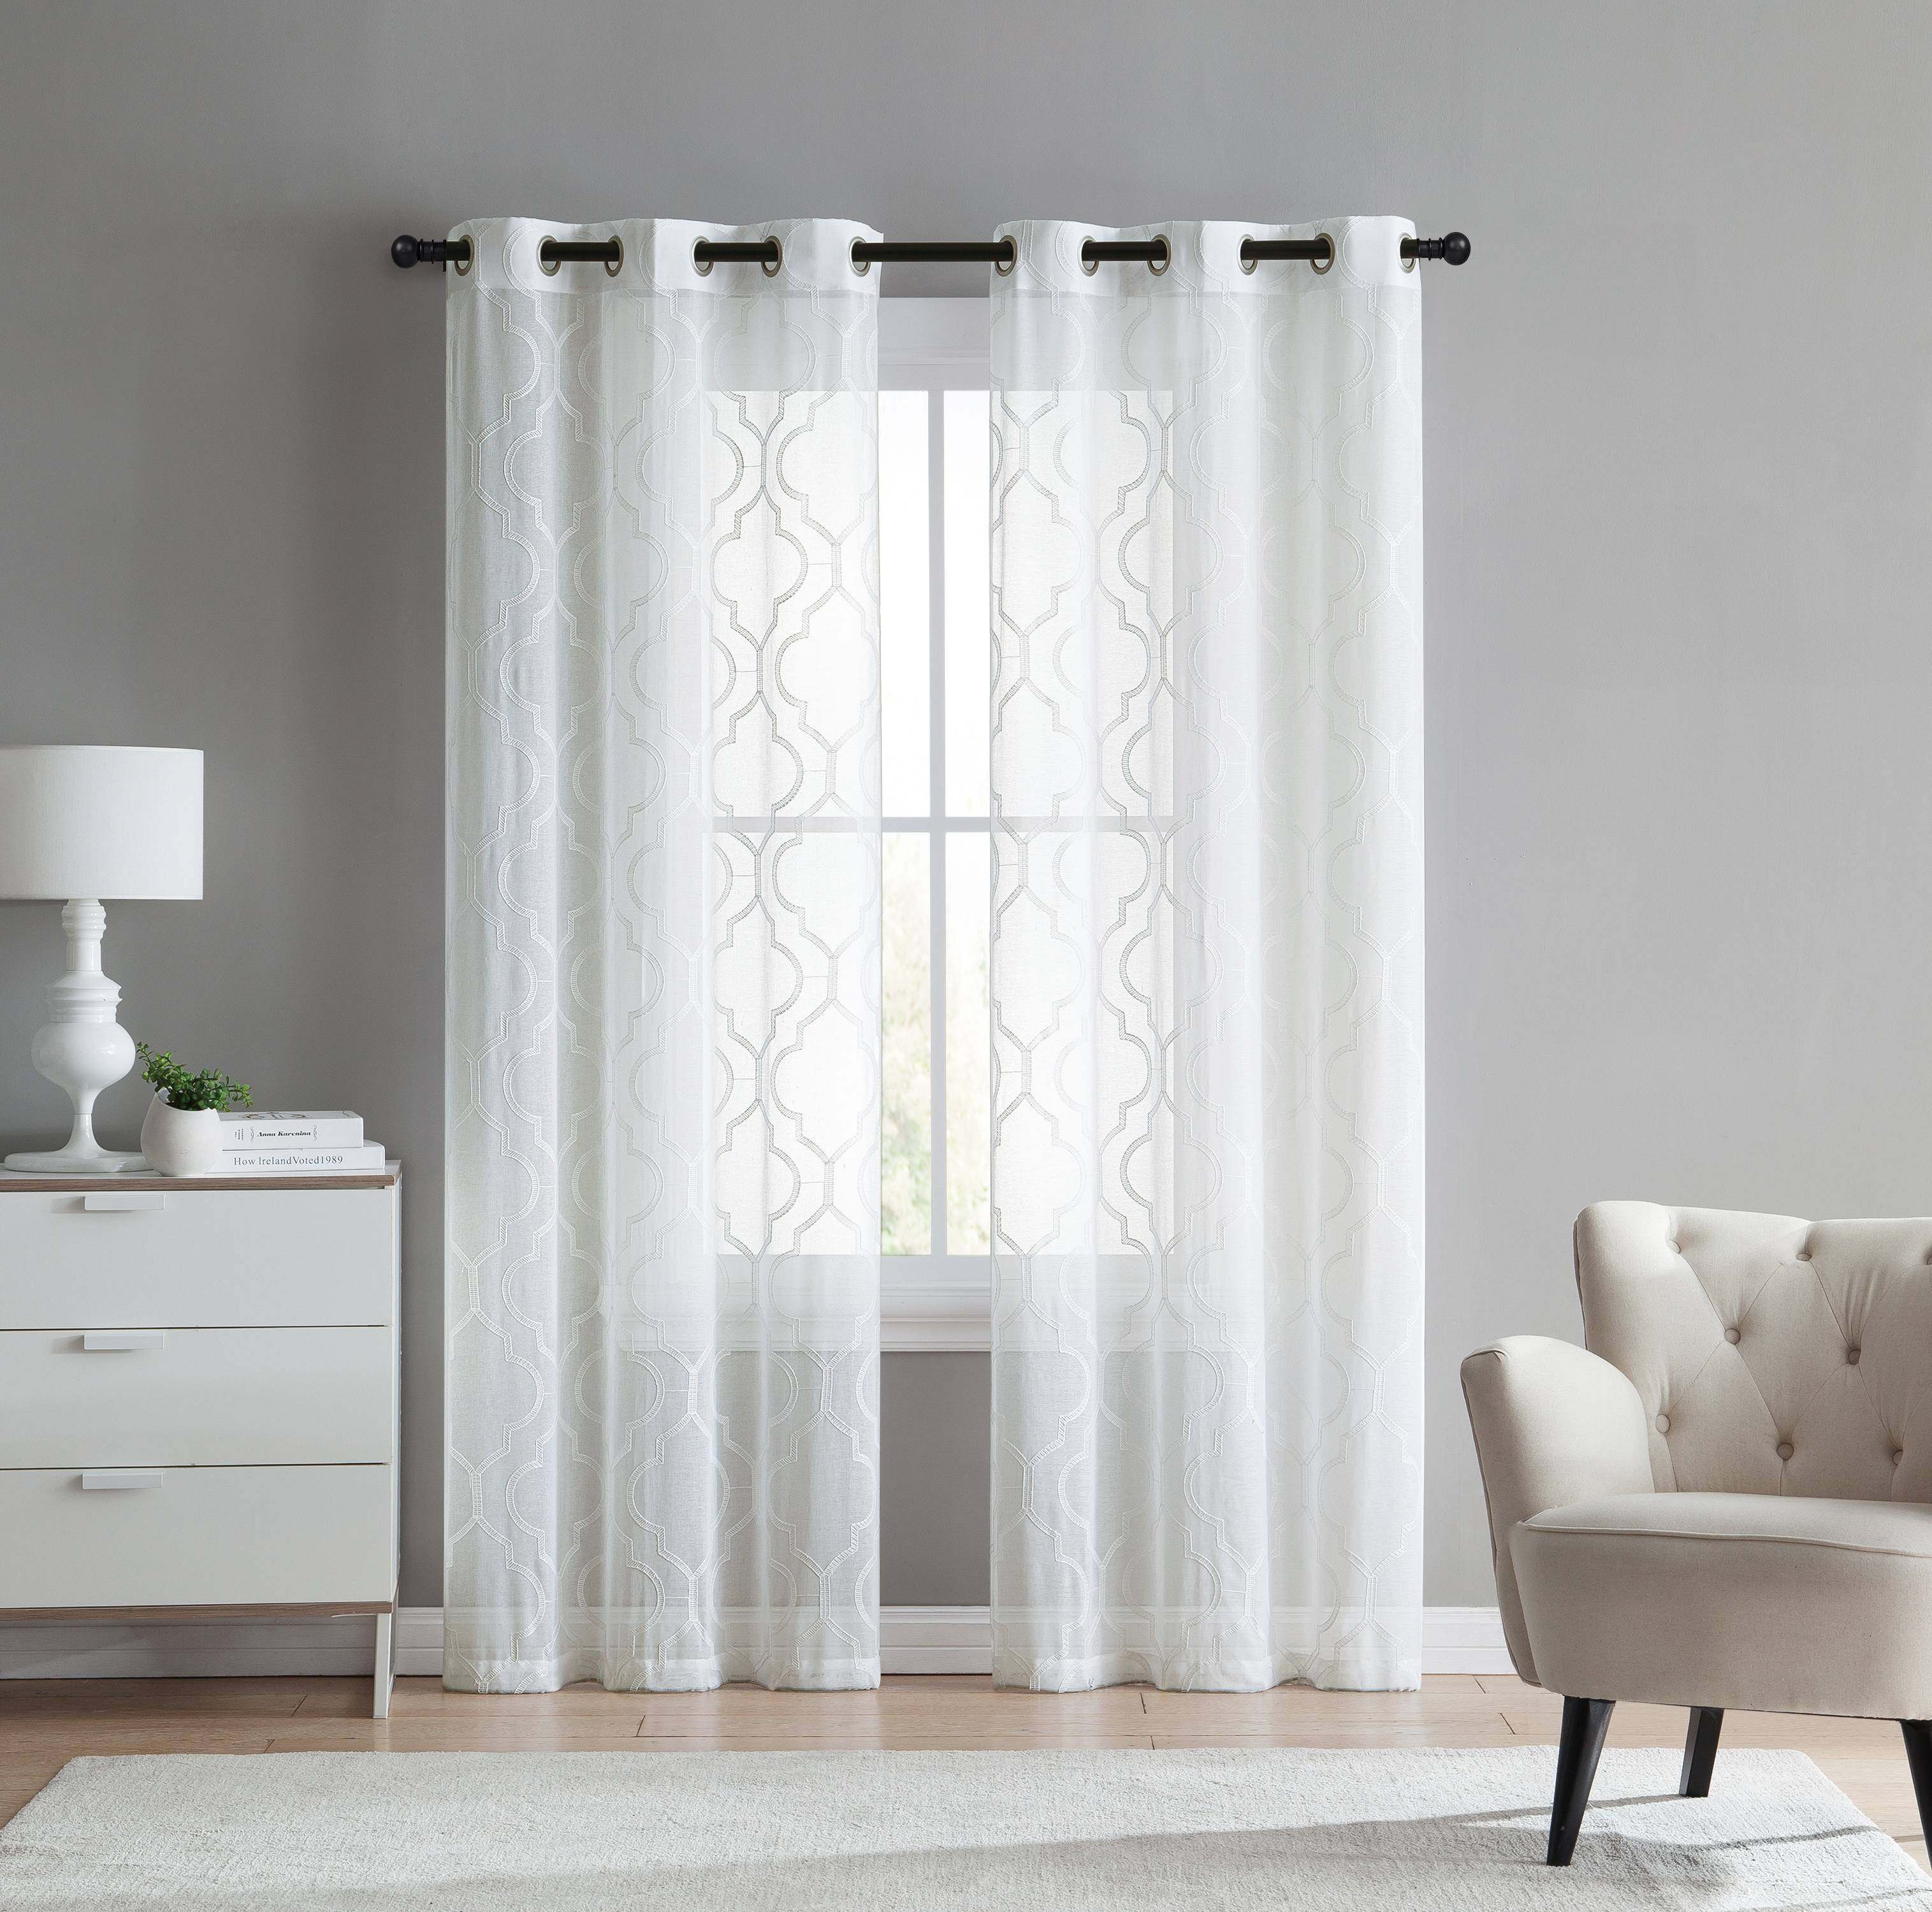 2 pack vcny home charlotte semi sheer trellis grommet top curtain panels white